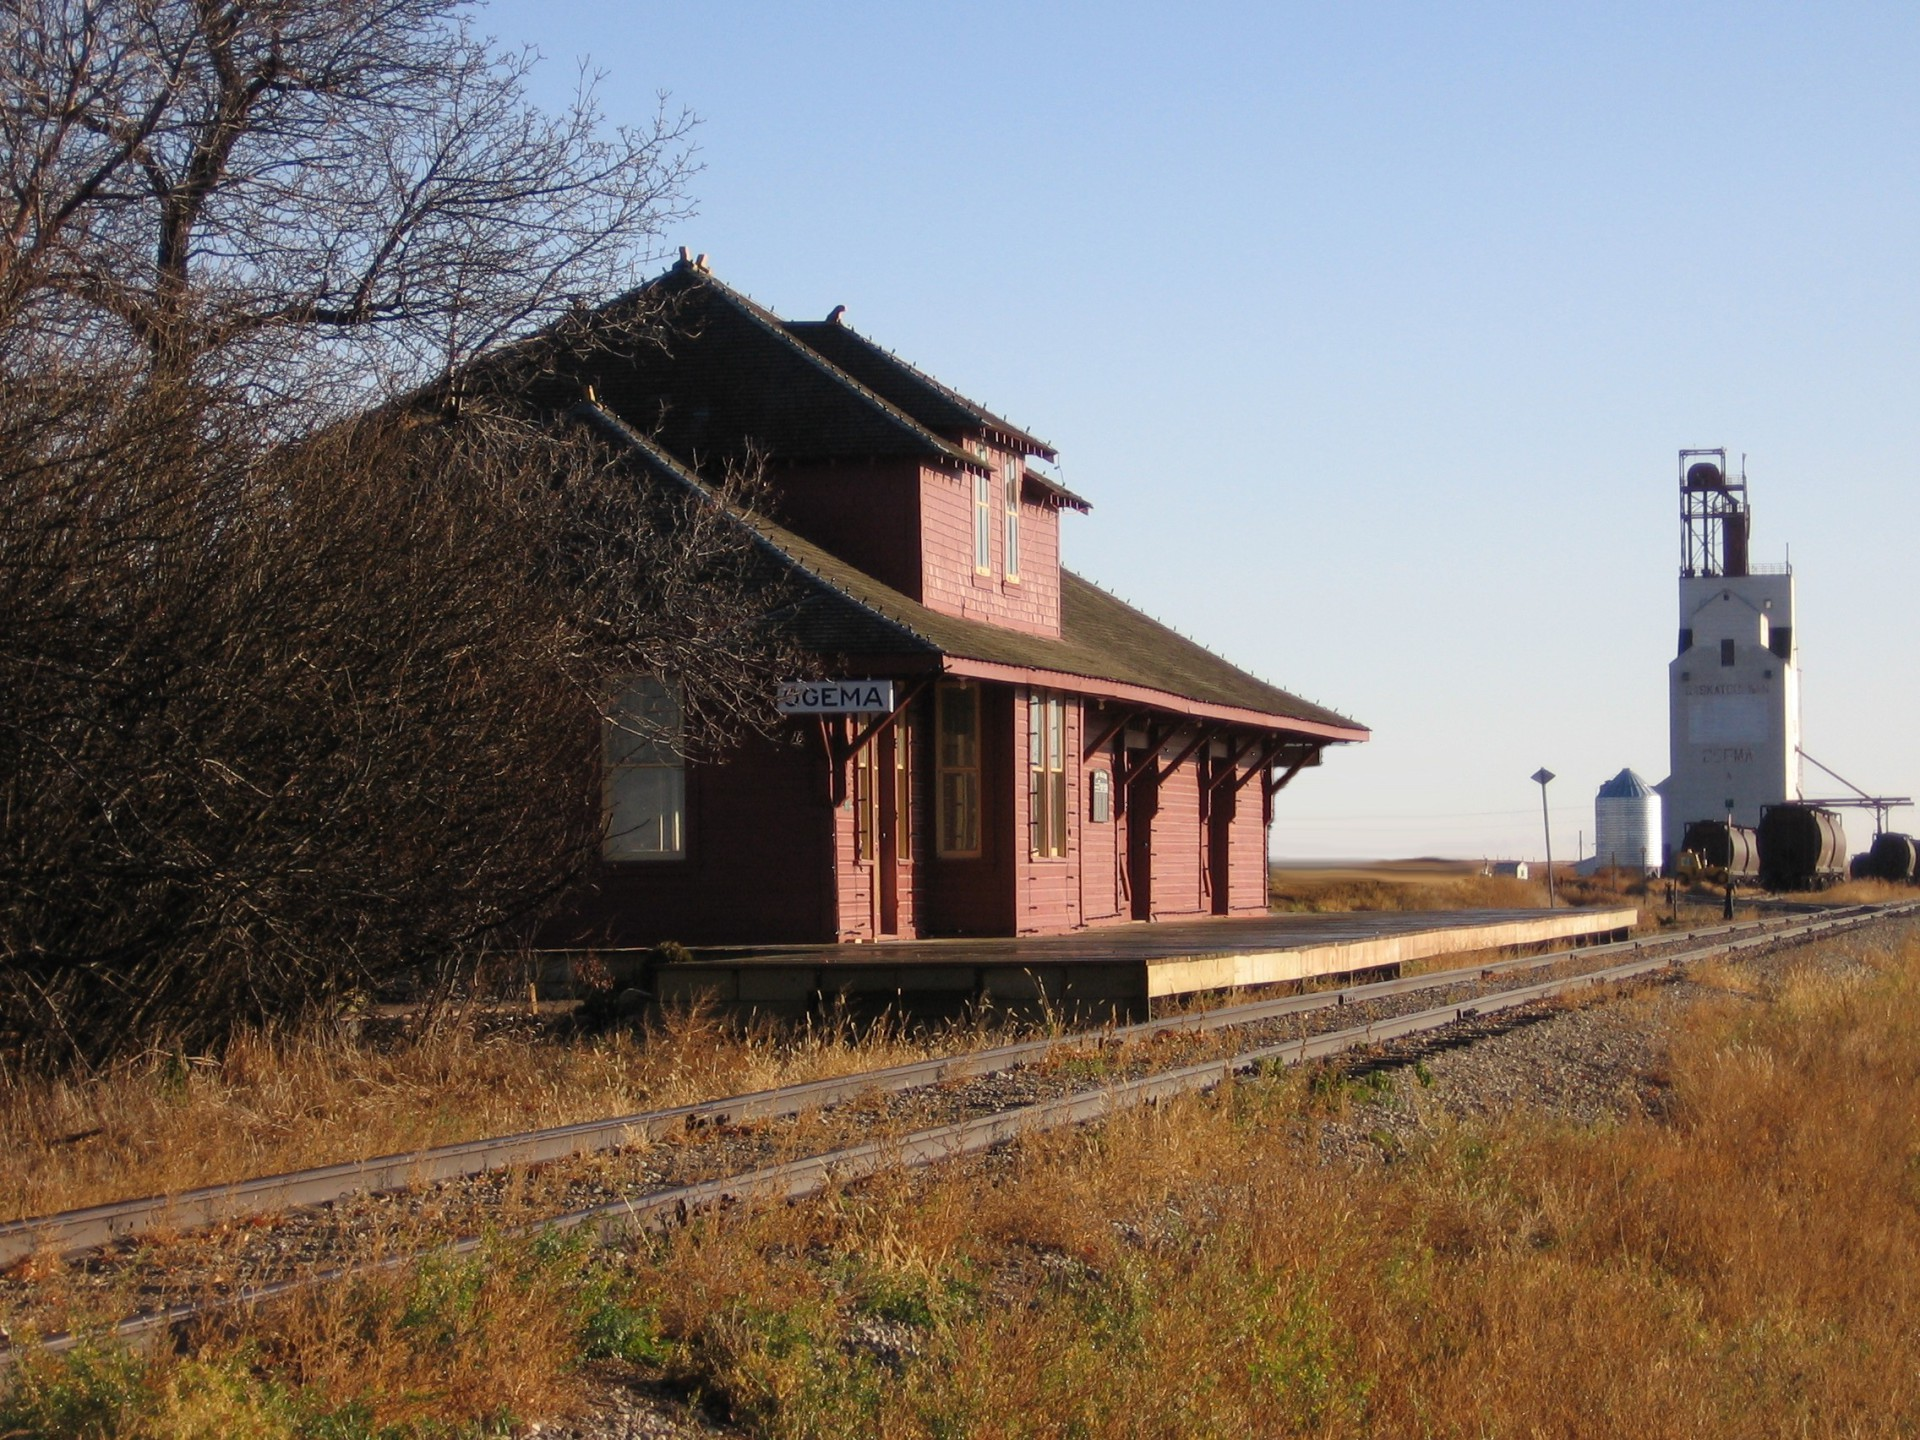 1912 CPR Train Station